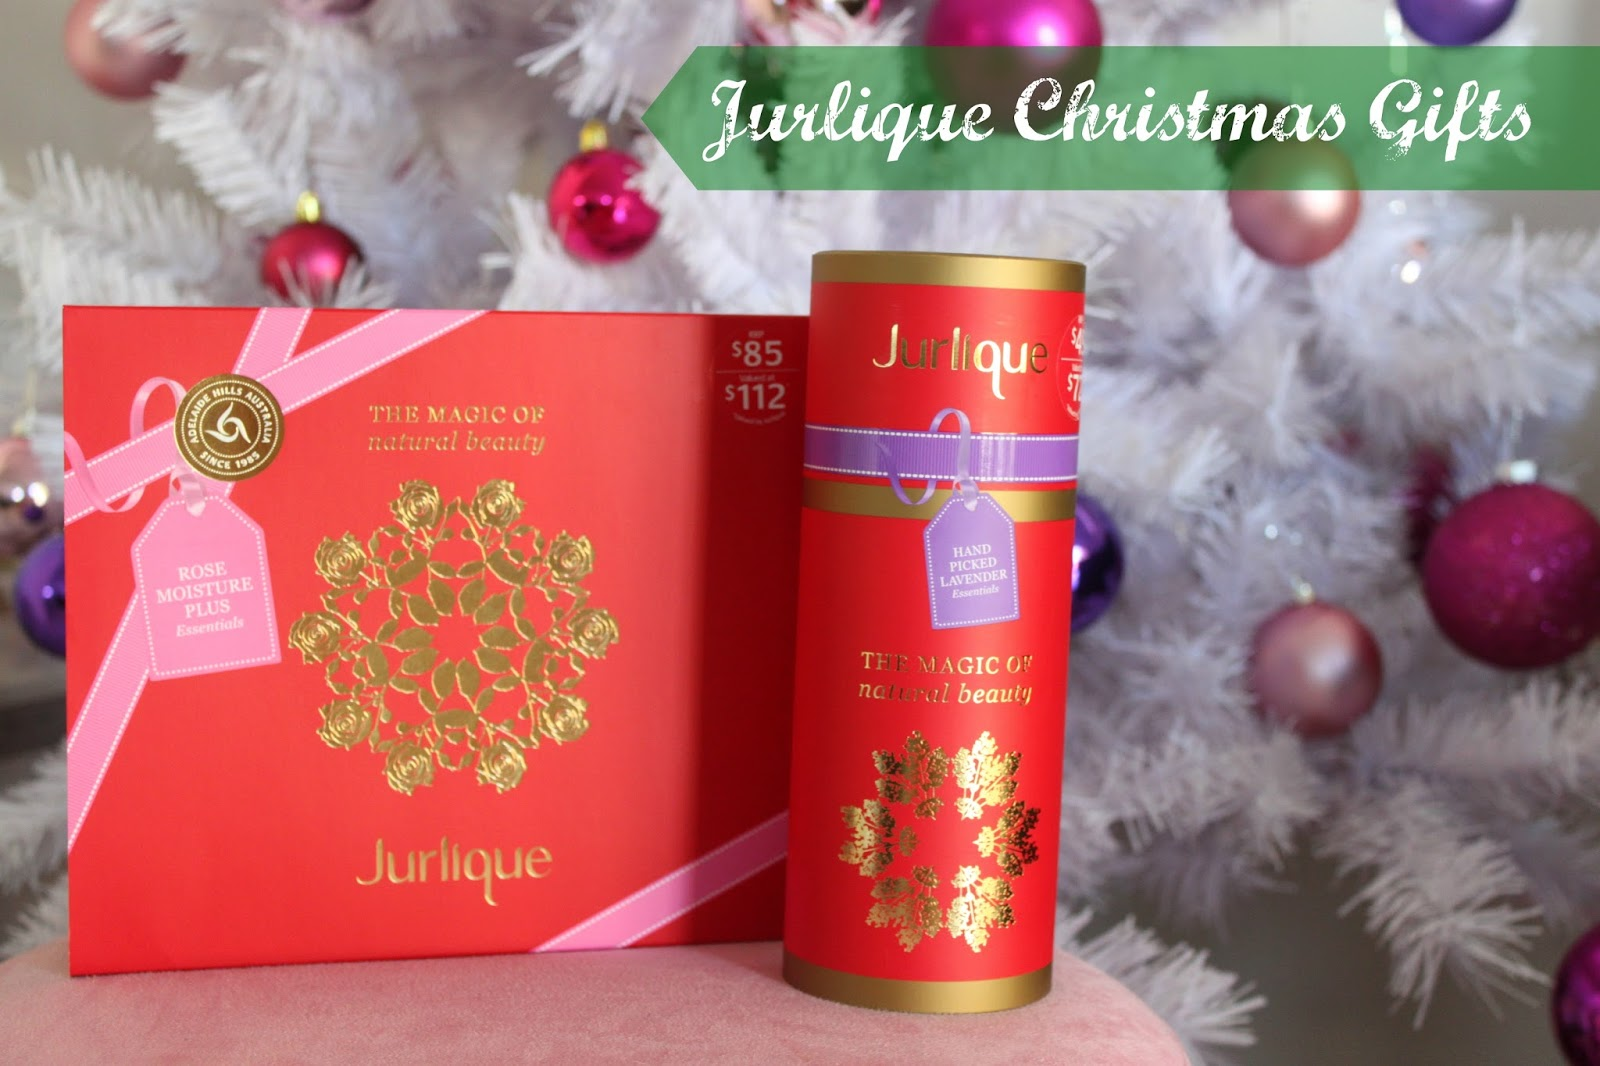 Australian Beauty Review: Jurlique Christmas Gift Sets